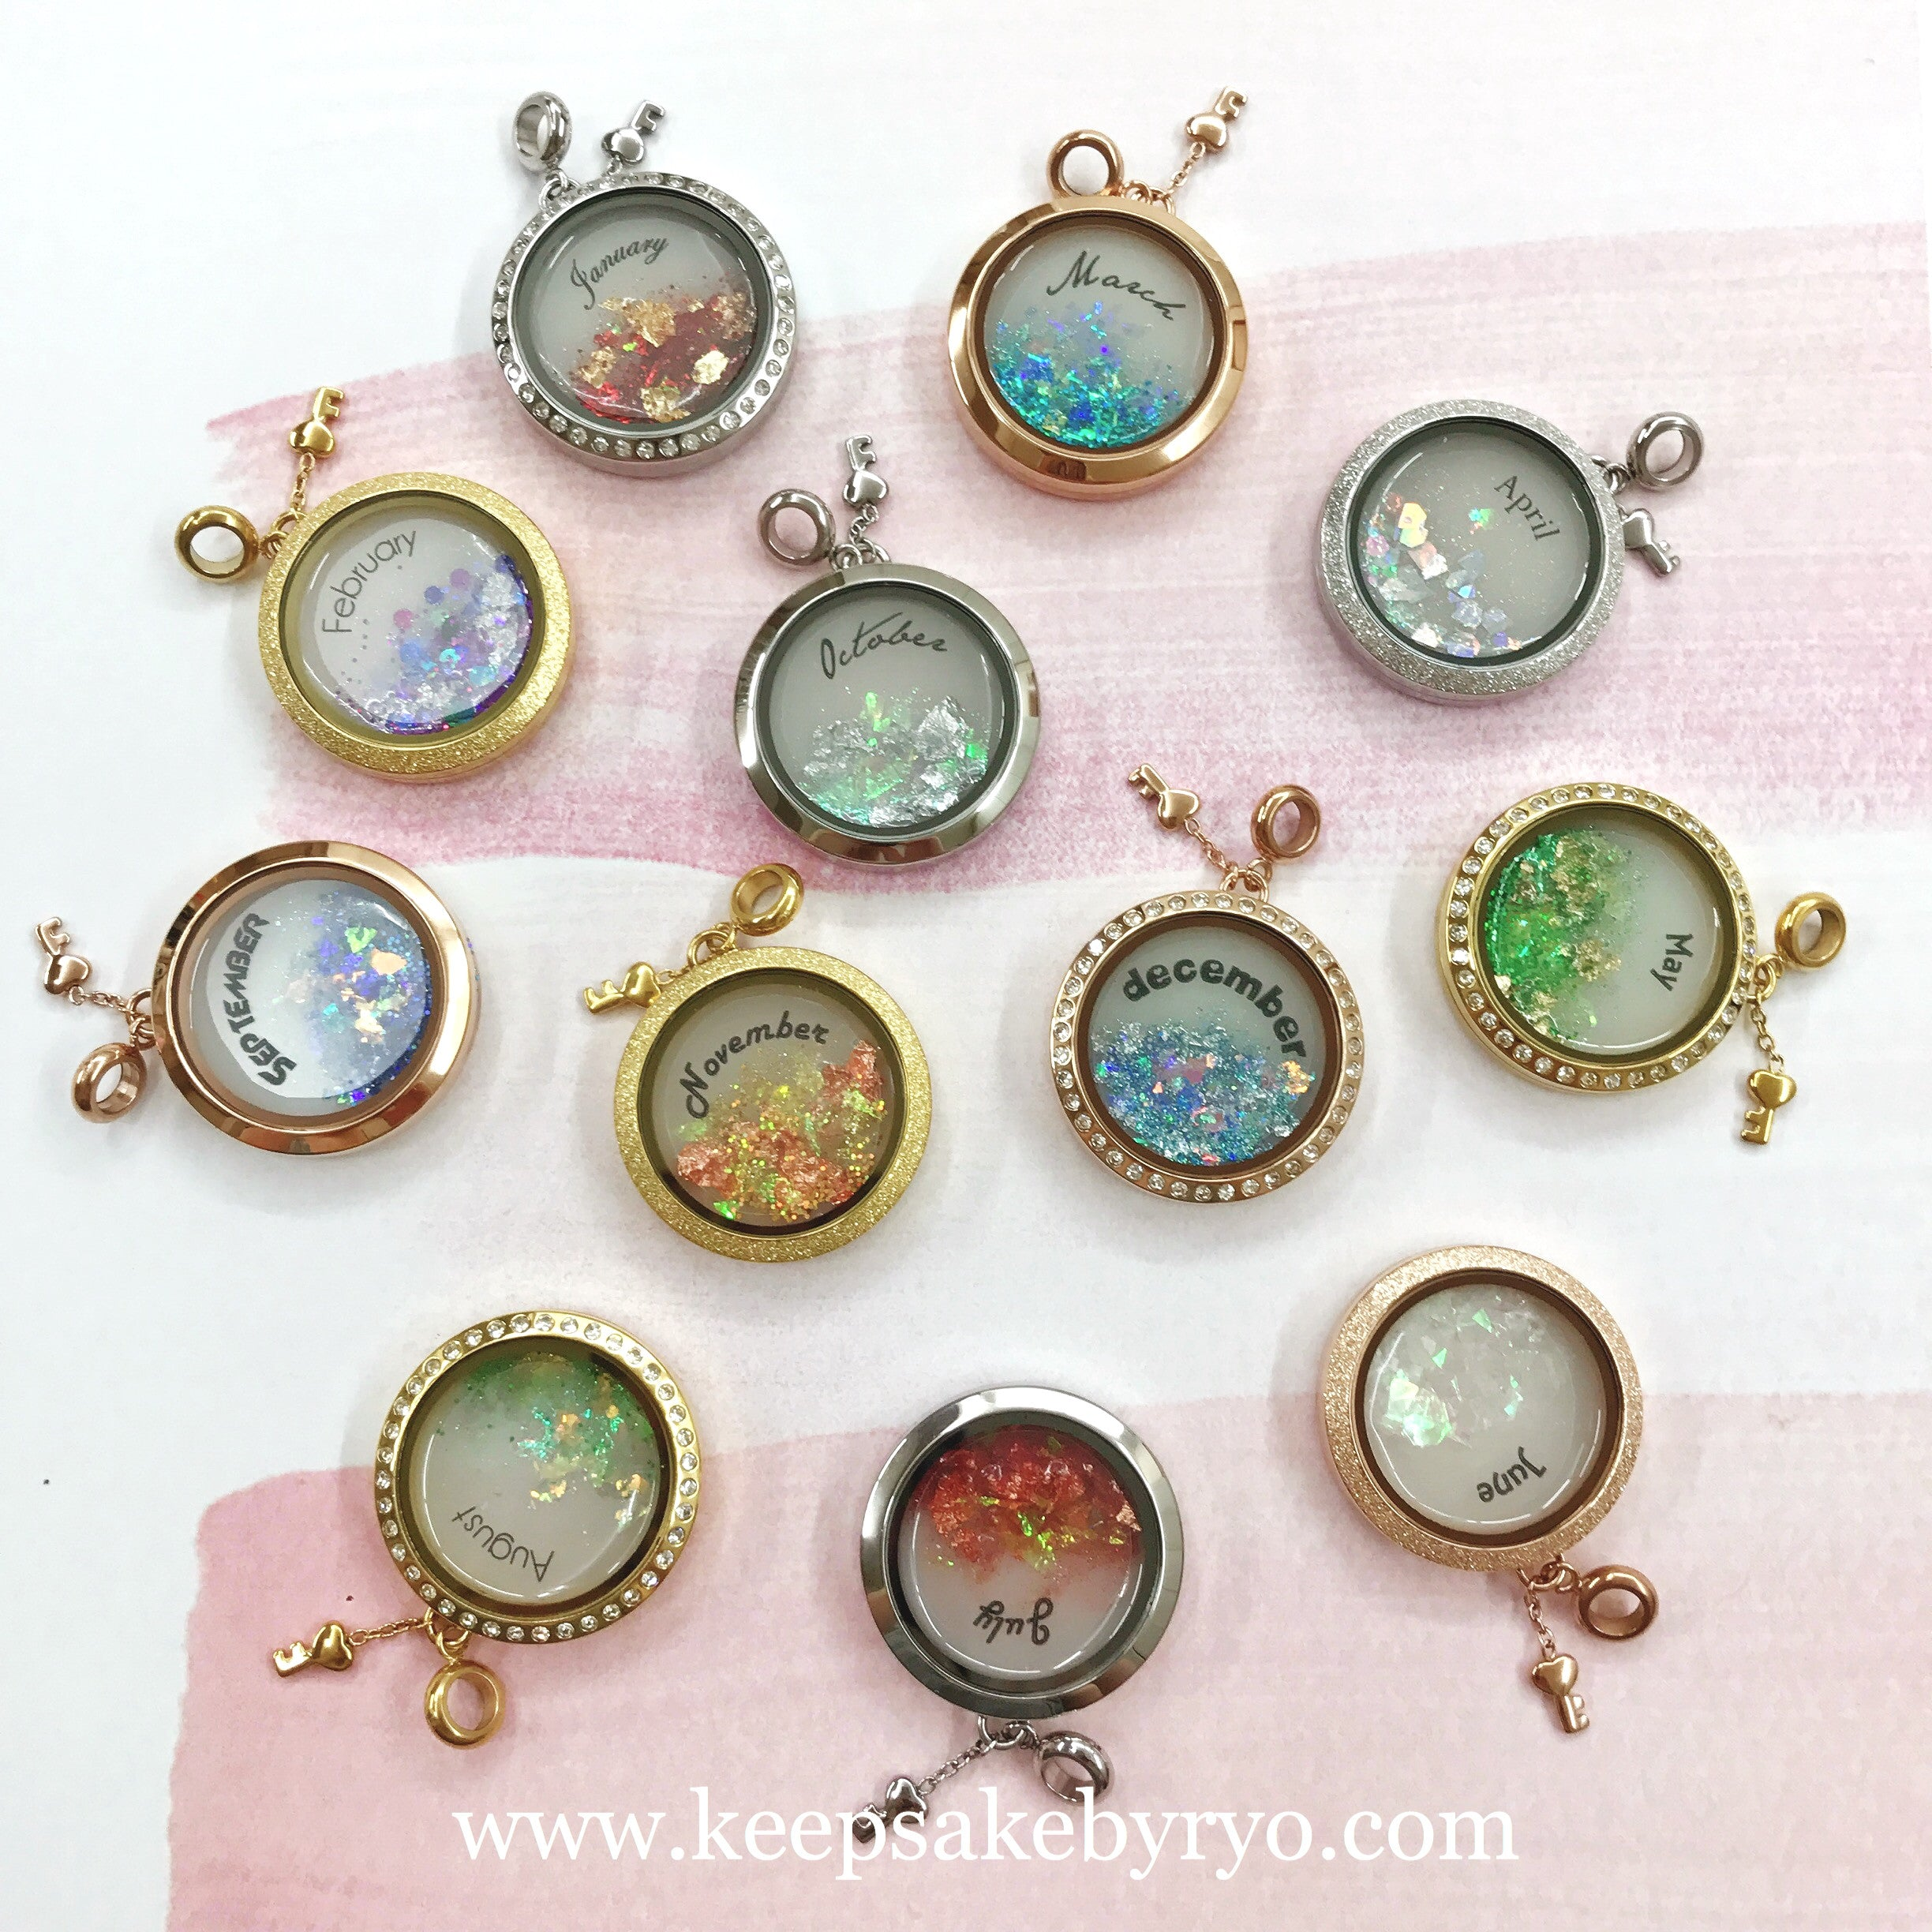 lockets jewelry necklace for girls watch collection locket and vollection great unique boys